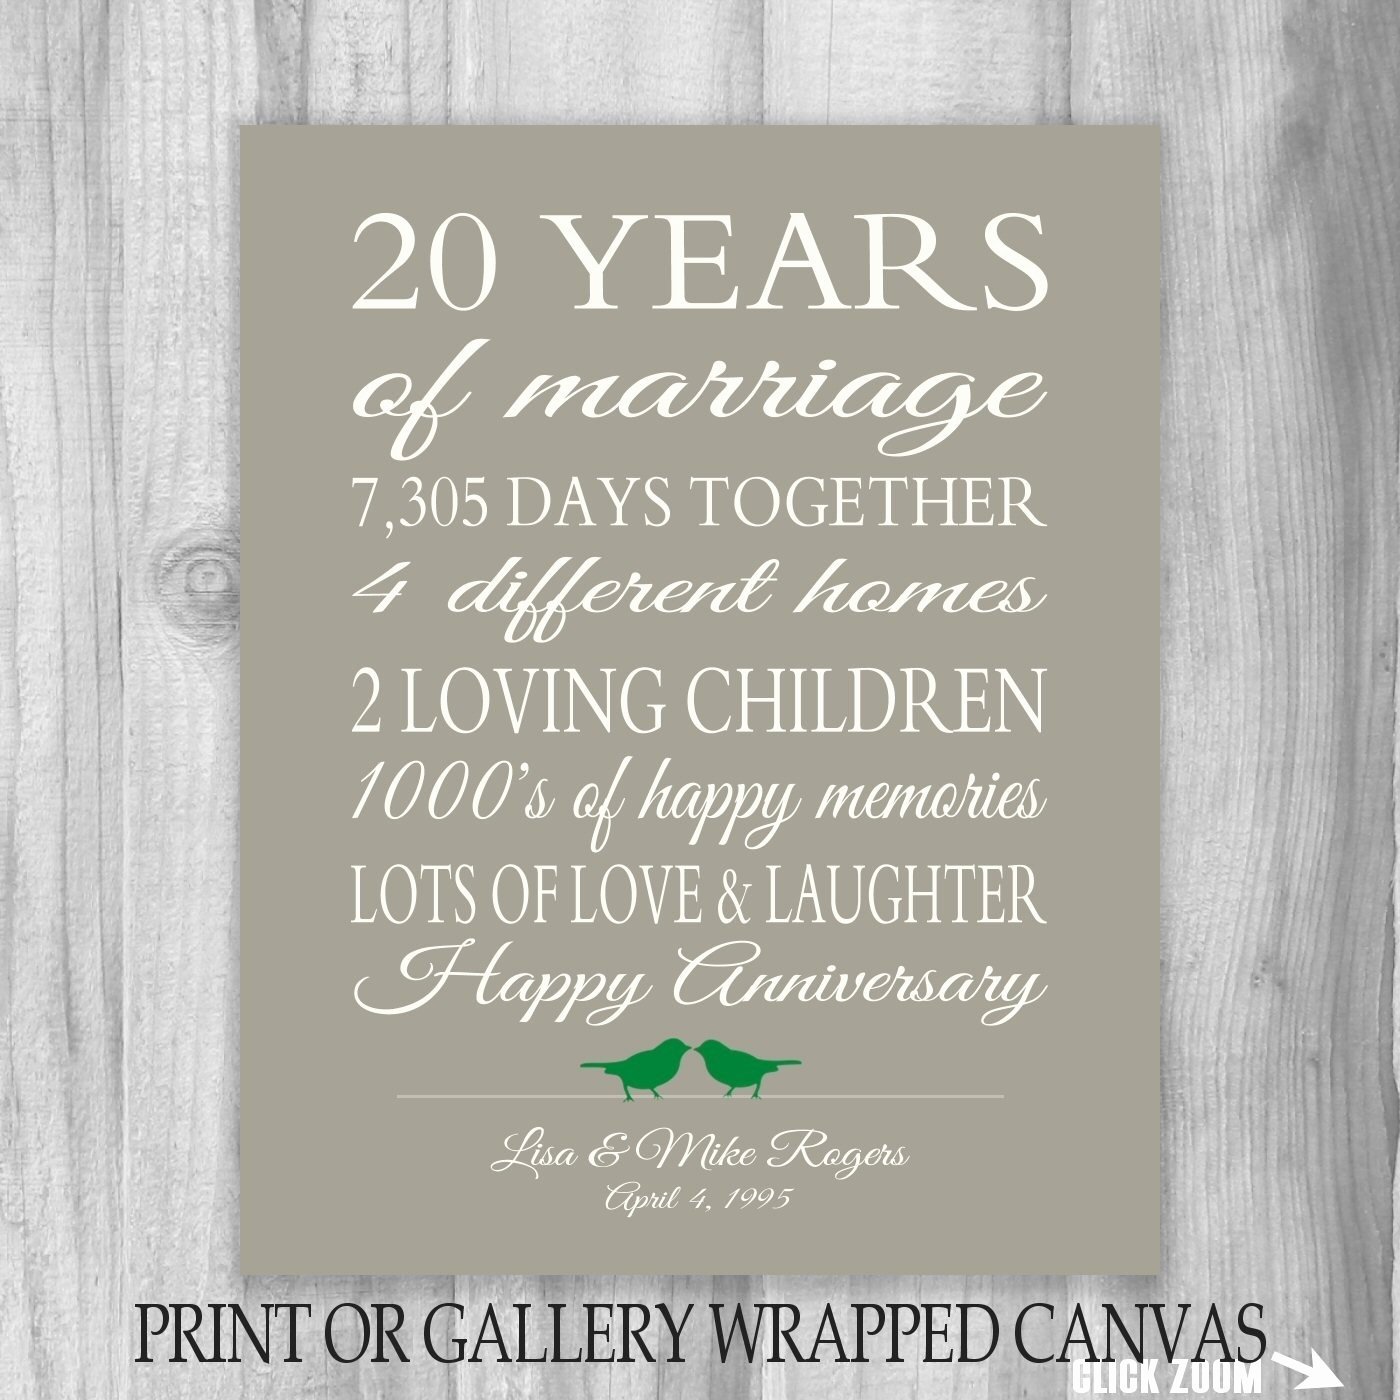 10 Fabulous 20 Year Anniversary Gift Ideas For Husband 2 year wedding anniversary gifts for husband best of gifts design 2020